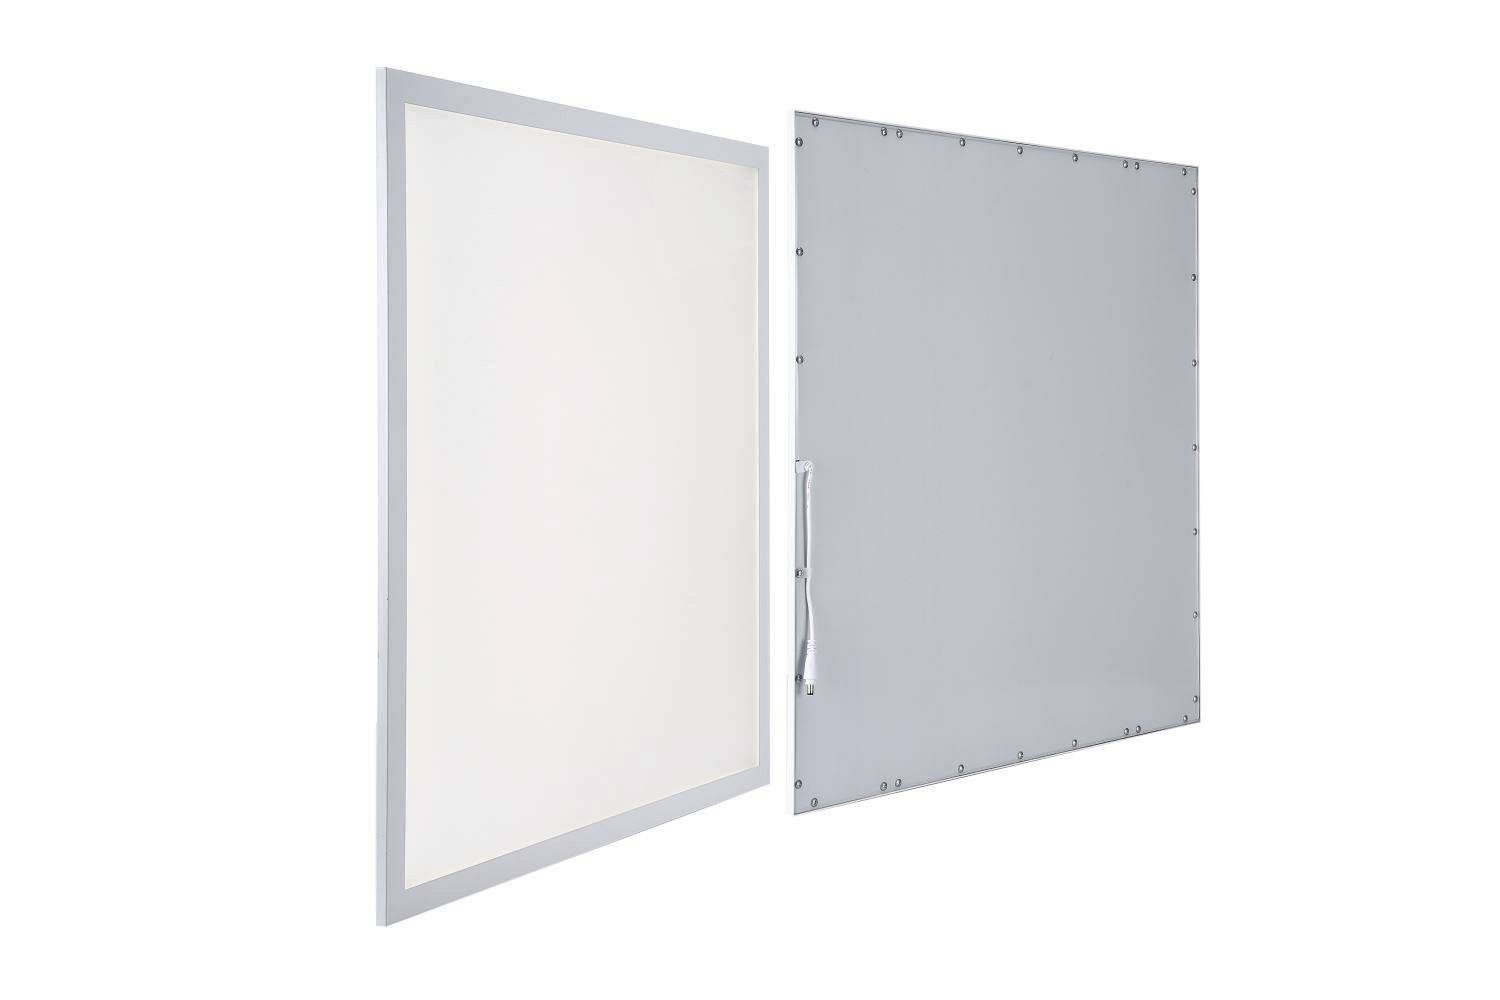 LED panel 60x60 edge-lit panel 600x600 ultra-thin led flat panel light Europe UK CE CB OHS TUV 5